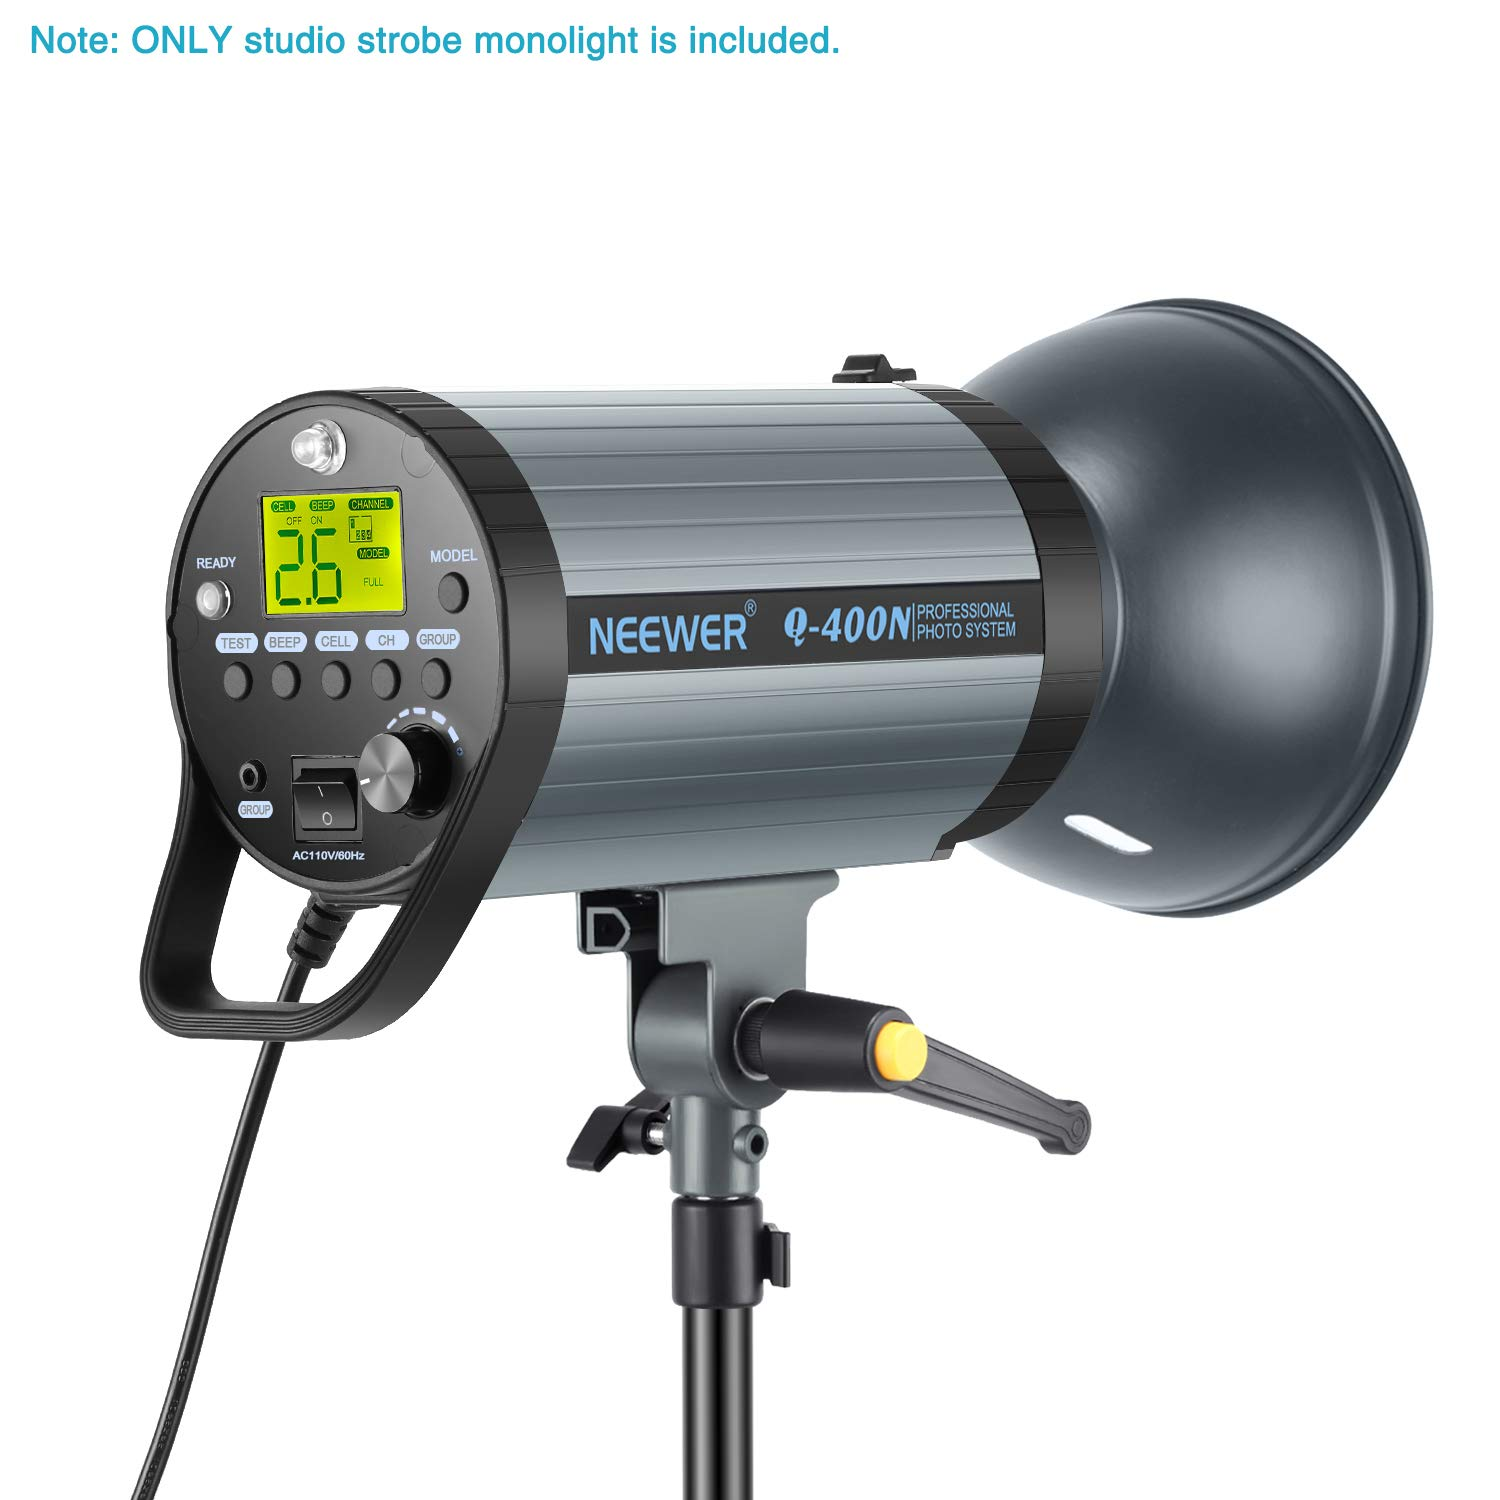 Neewer 400W GN65 Studio Flash Strobe Light Monolight with 2.4G Wireless Trigger and Modeling Lamp, Recycle in 0.01-0.5 Sec, Bowens Mount for Indoor Studio Portrait Photography(Q400N) by Neewer (Image #7)